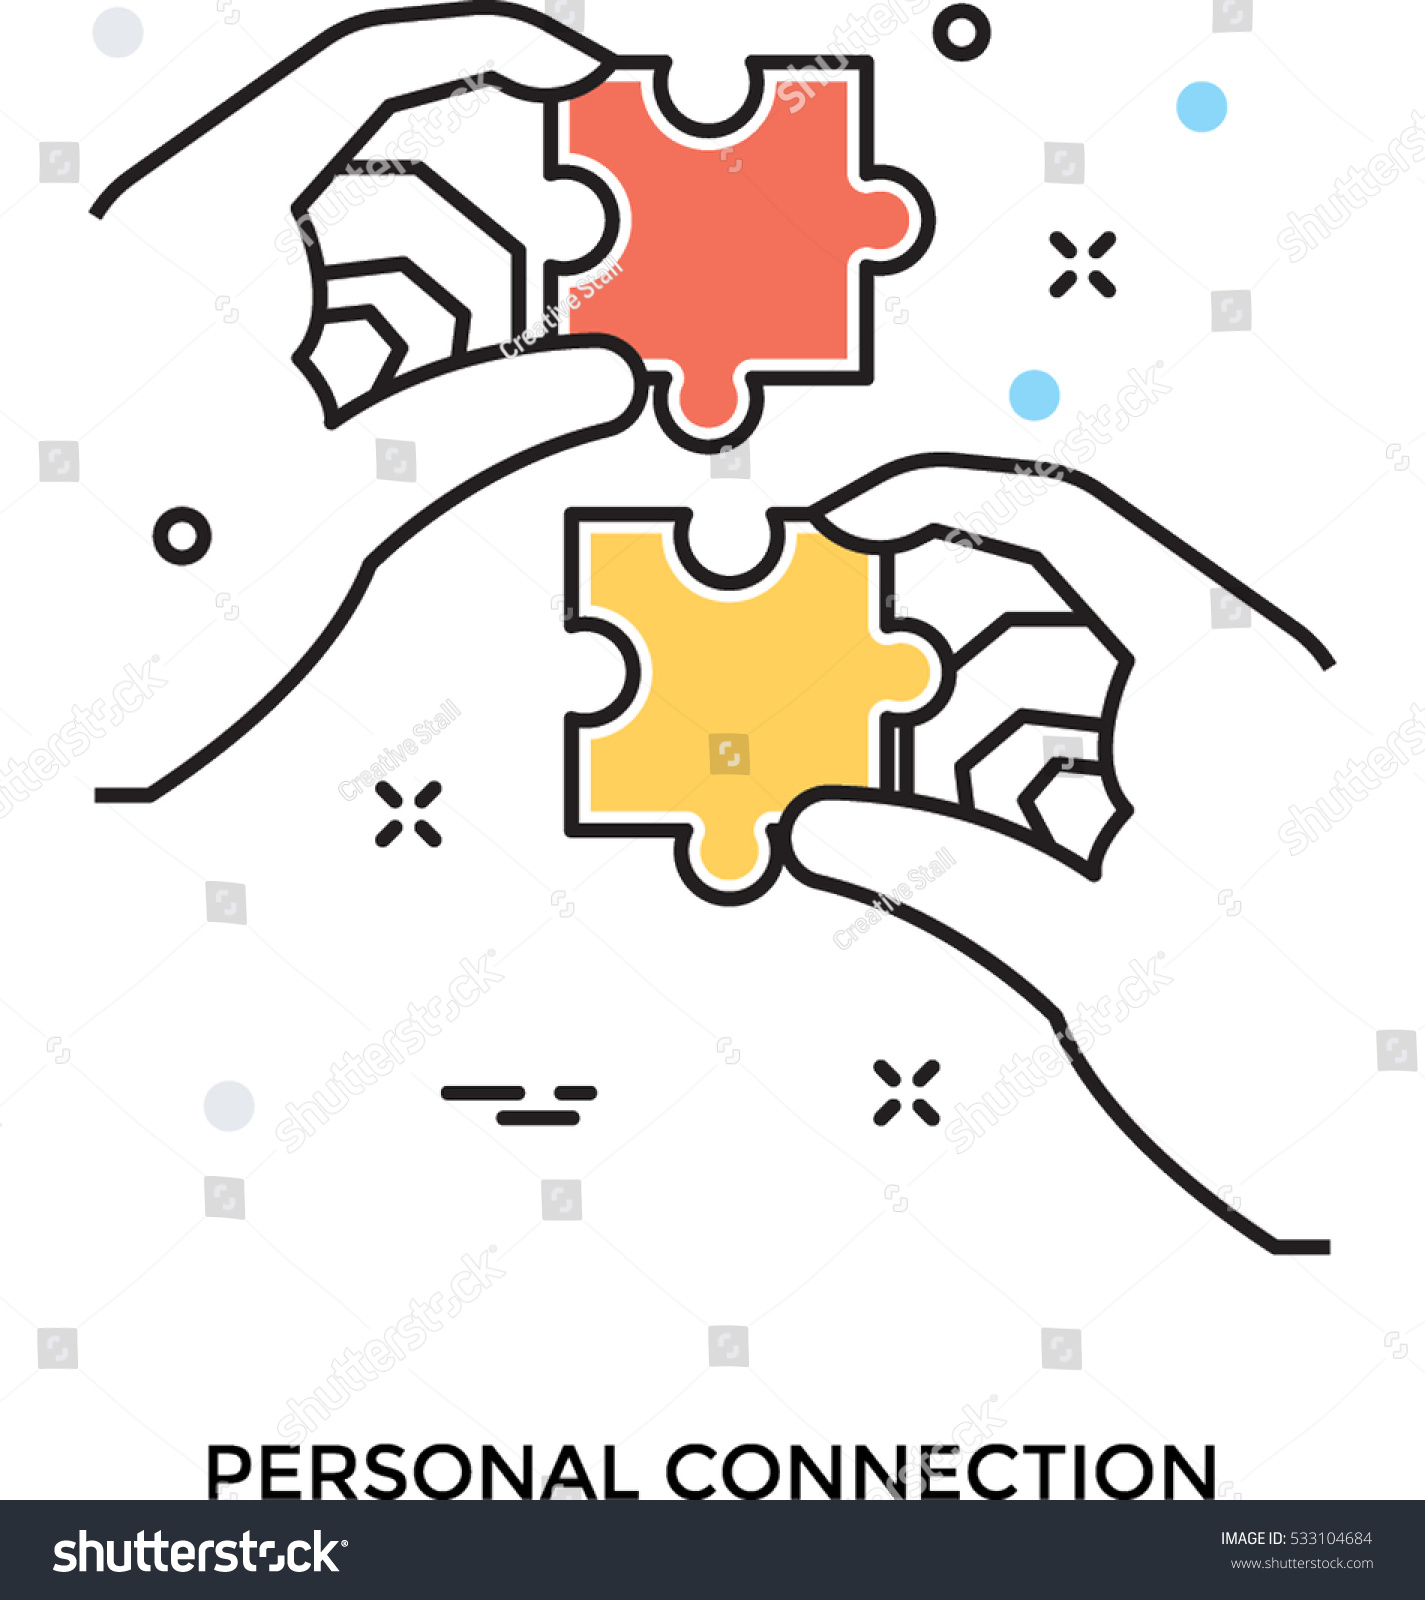 personal connection icon vector shutterstock